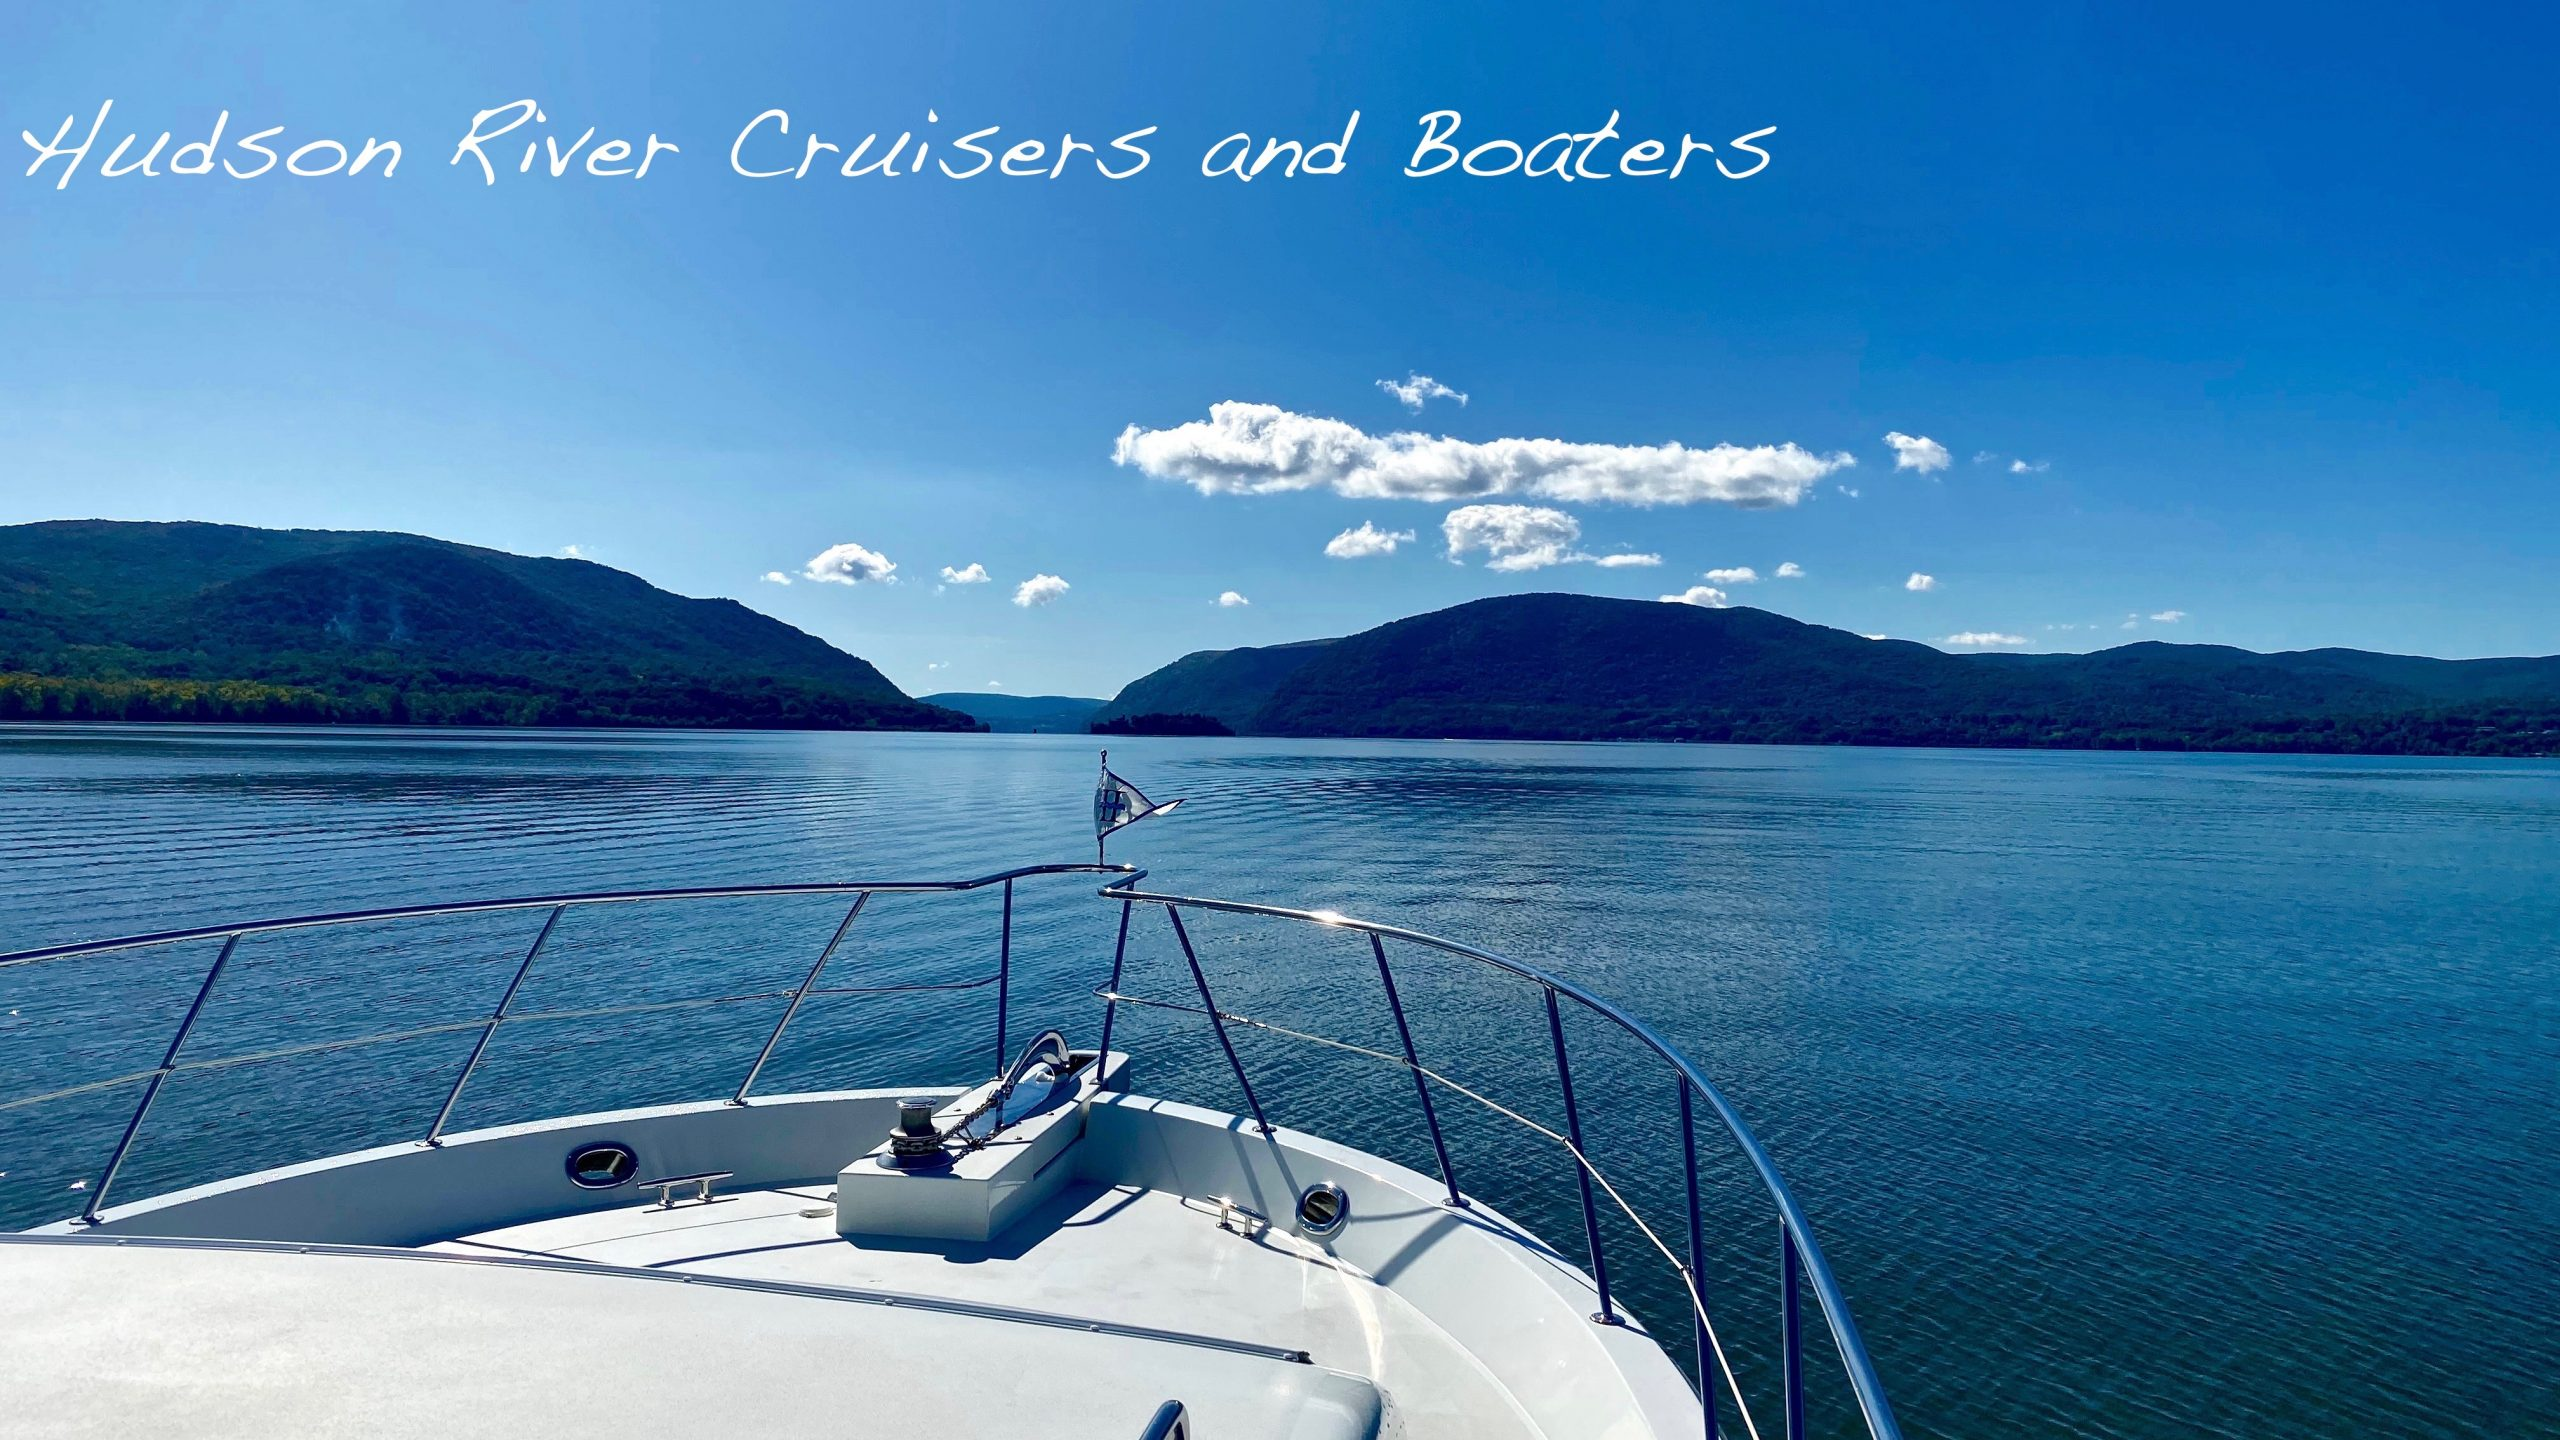 Check Out The Hudson River Cruisers Group